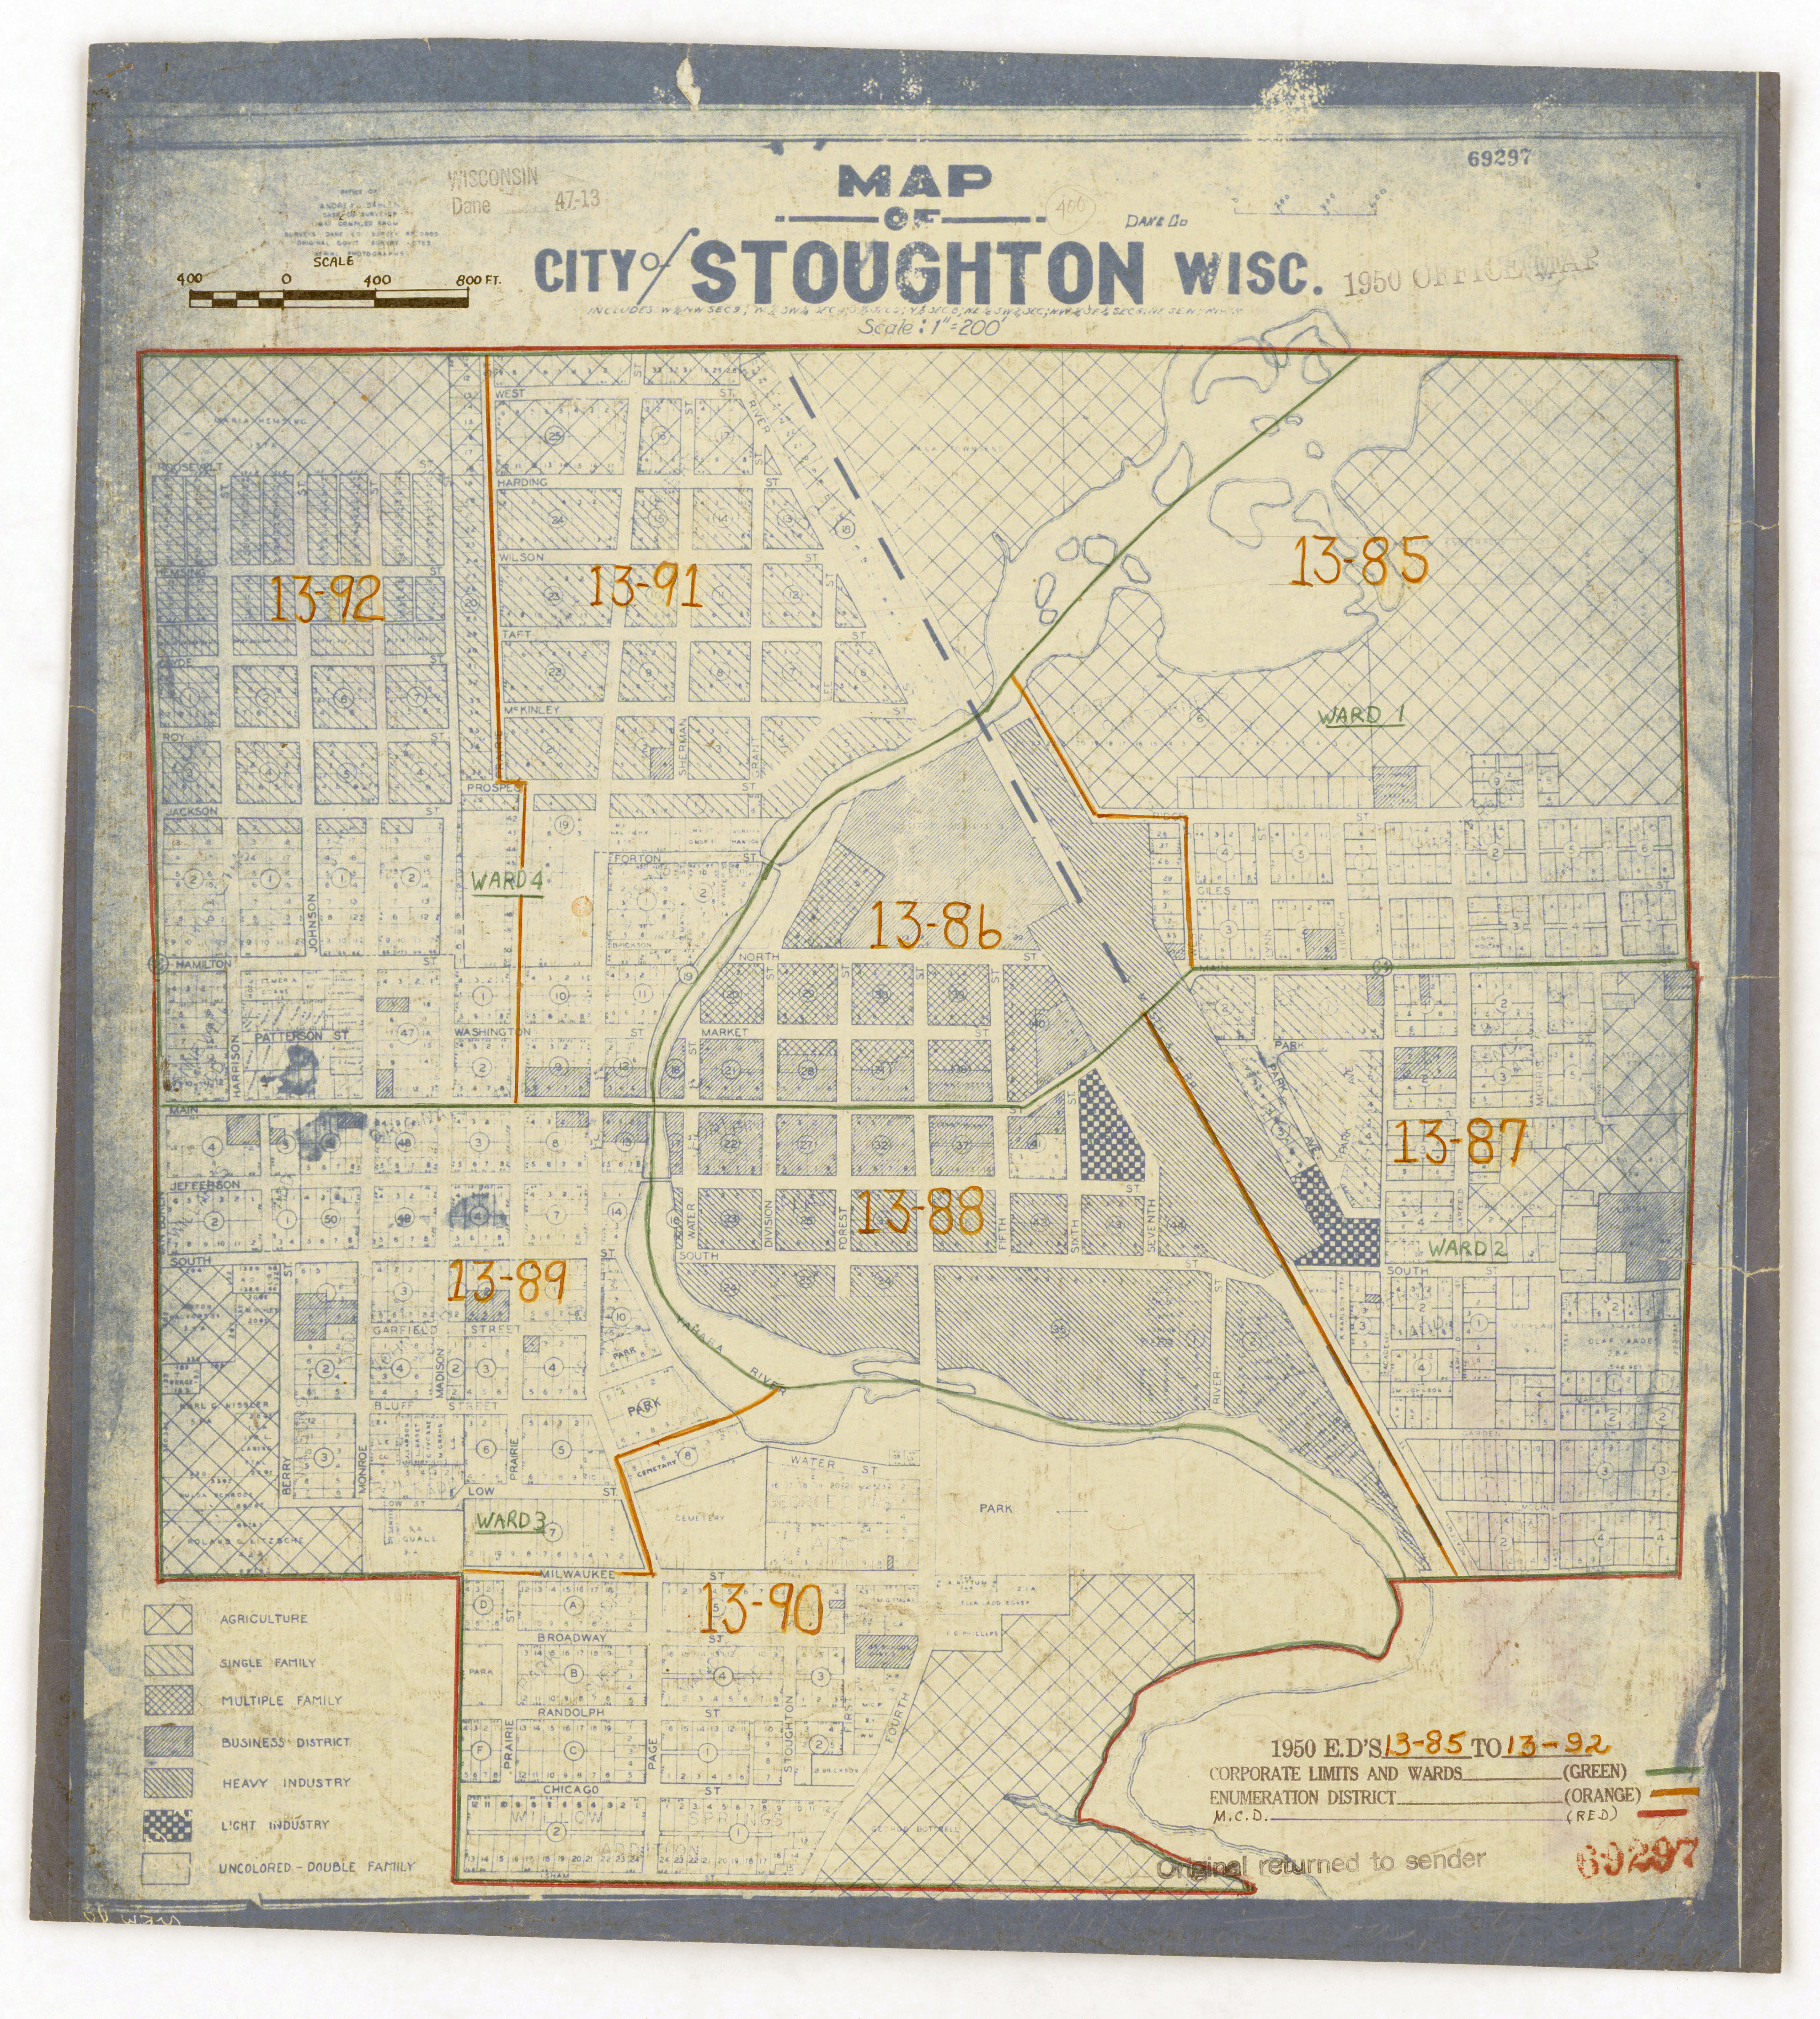 1950 Census Enumeration District Maps - Wisconsin (WI) - Dane County - Stoughton - ED 13-85 to 92